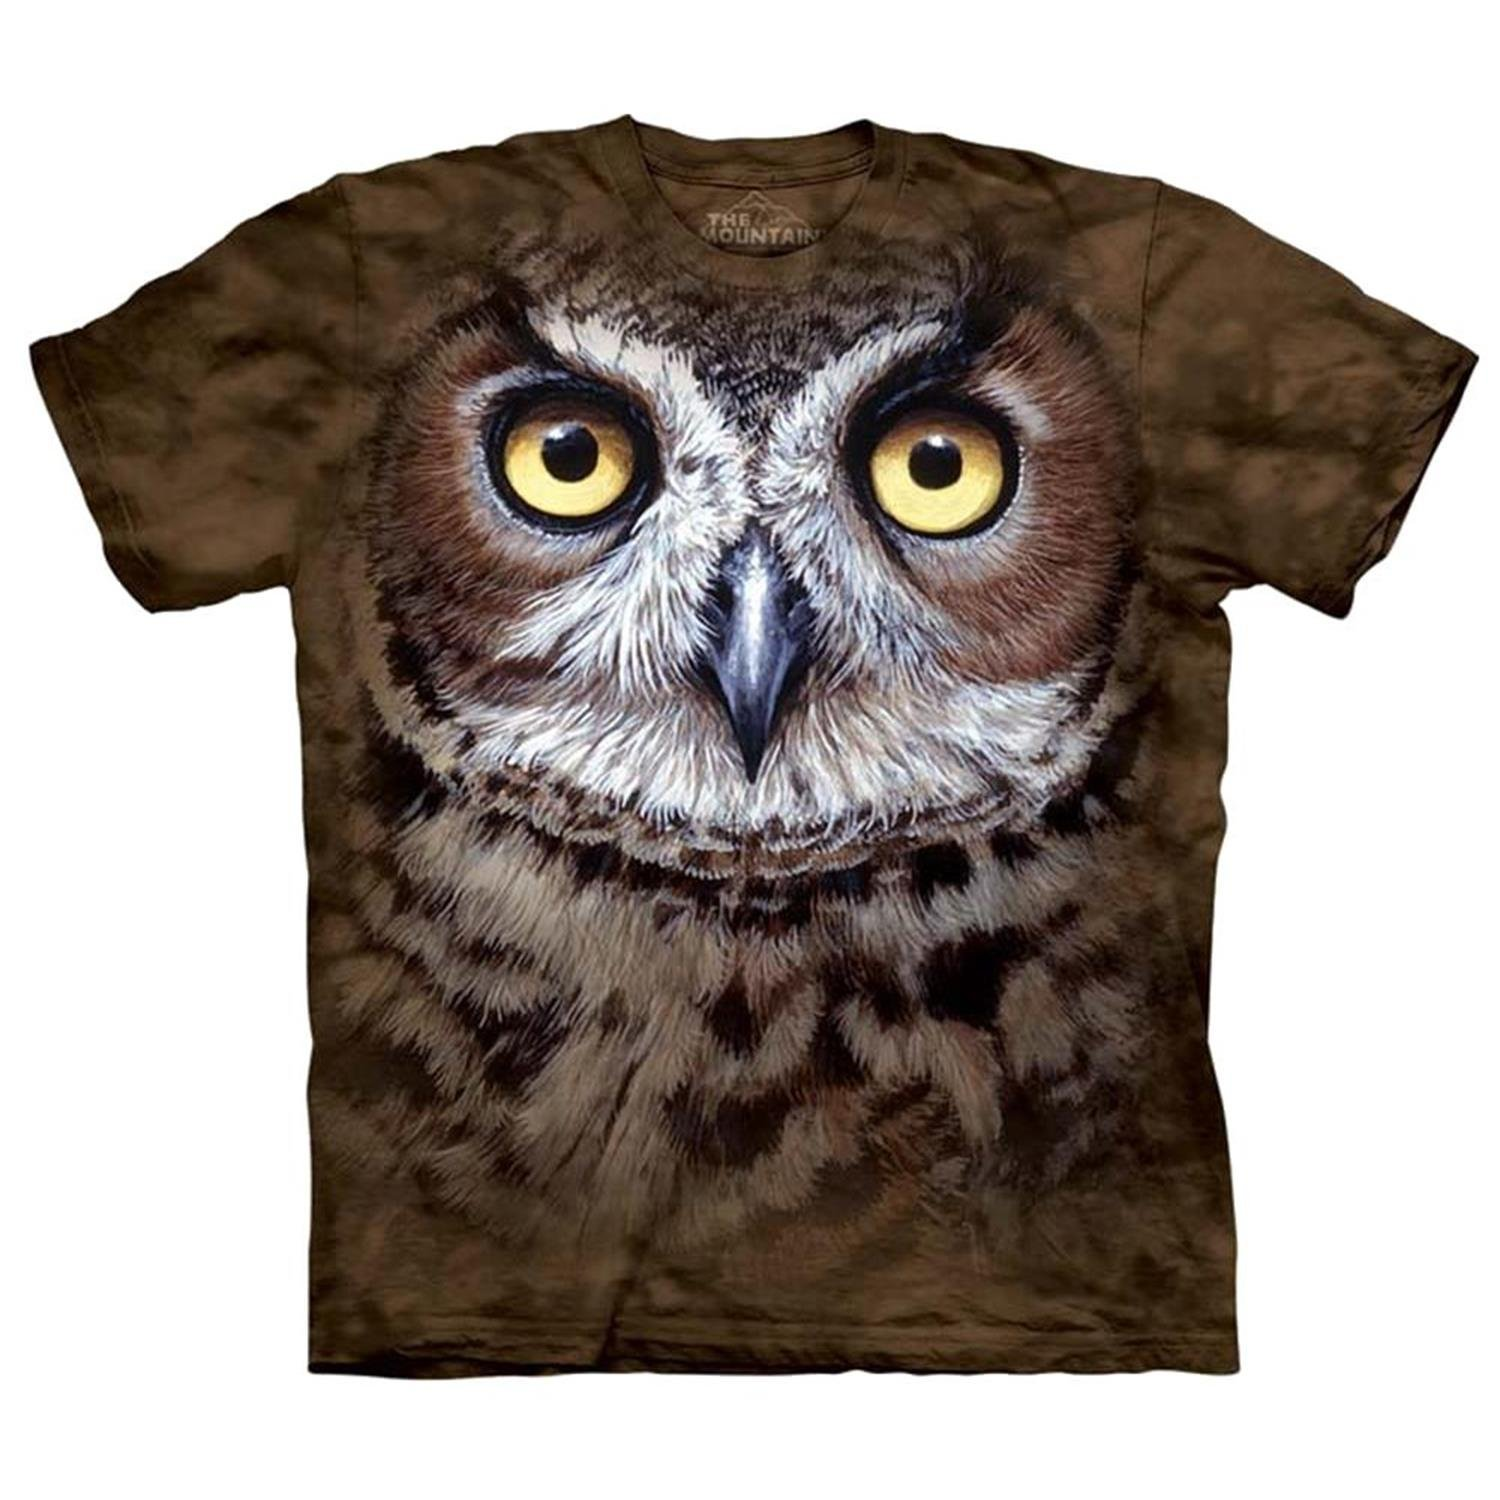 e21cdea6b Amazon.com: Mountain Great Horned Owl Head Adult Size T-shirt Brown ...